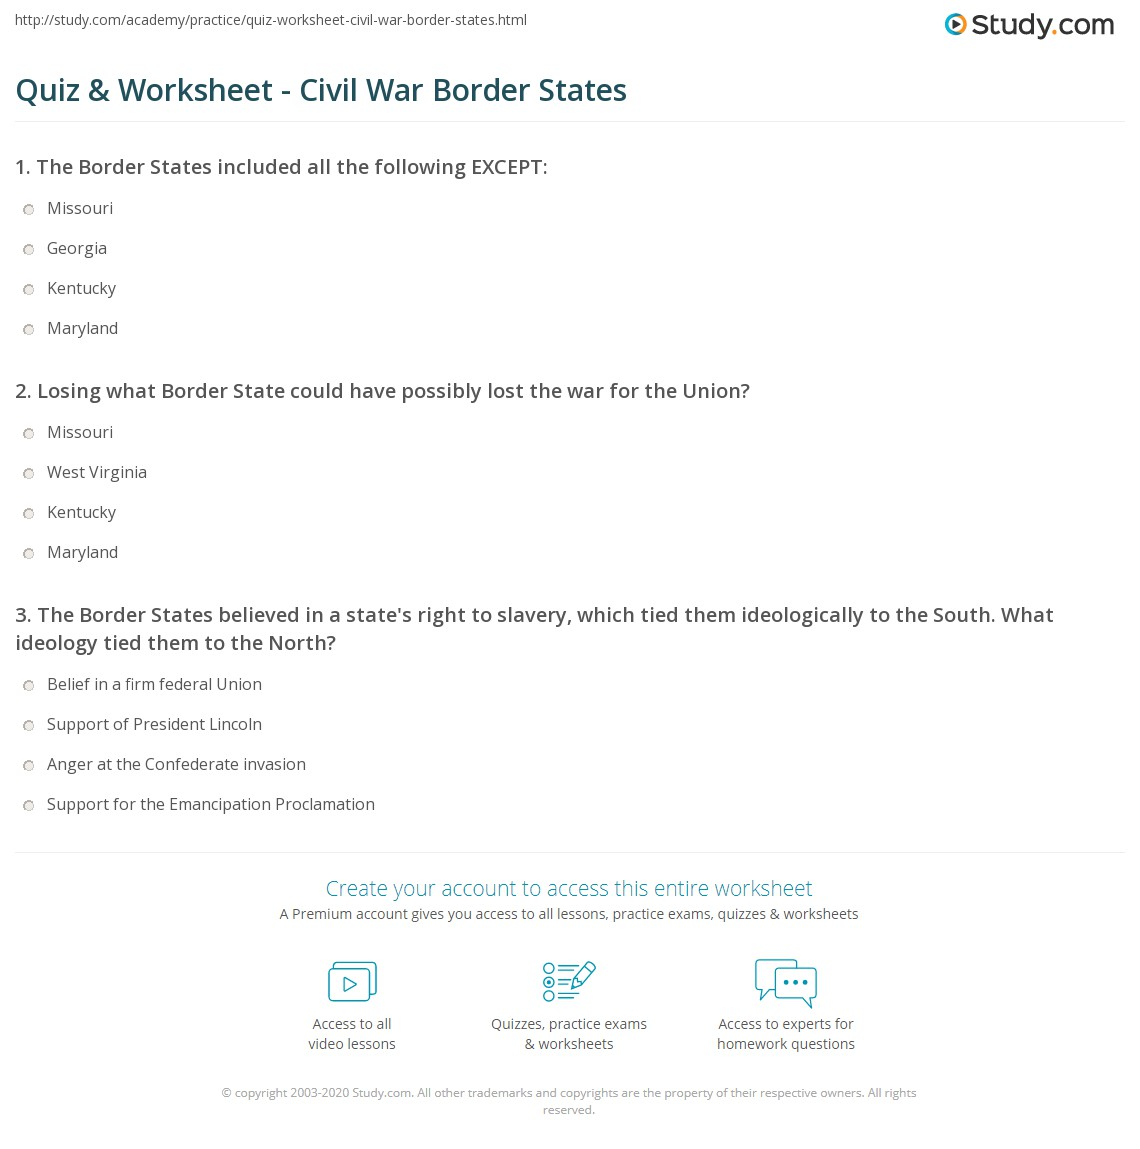 quiz worksheet civil war border states com print civil war border states definition significance worksheet